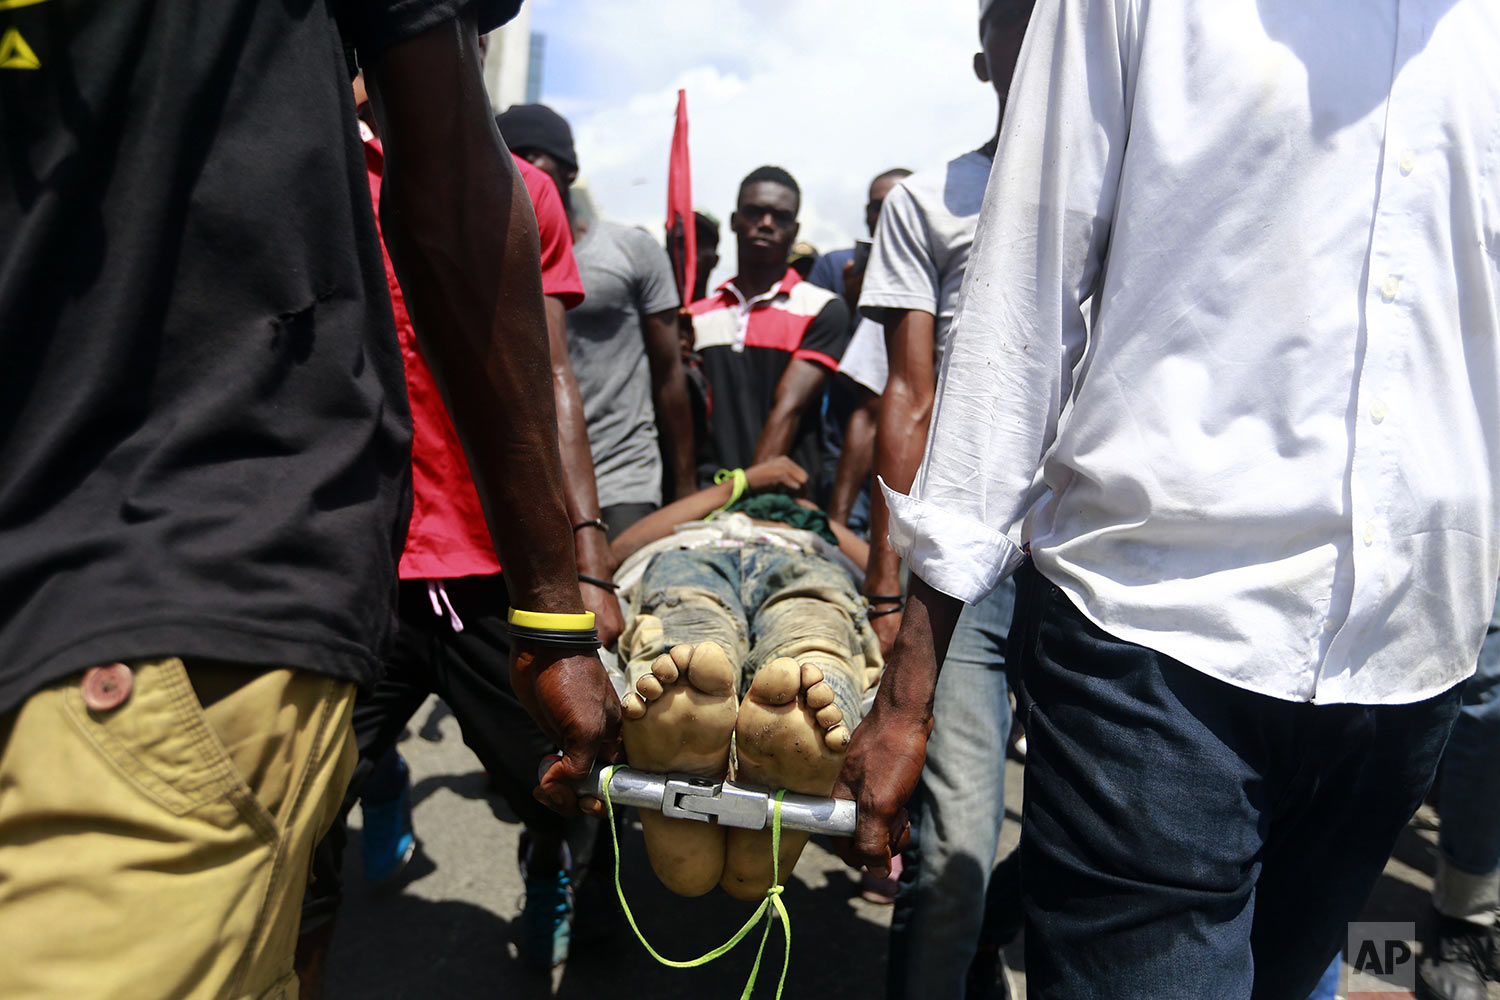 Protesters carry the body of man toward police, who they blame for his death, during an anti-government demonstration in Port-au-Prince, Haiti, Sunday, June 9, 2019. Protesters denouncing corruption paralyzed much of the capital as they demanded the removal of President Jovenel Moise. (AP Photo/Dieu Nalio Chery)